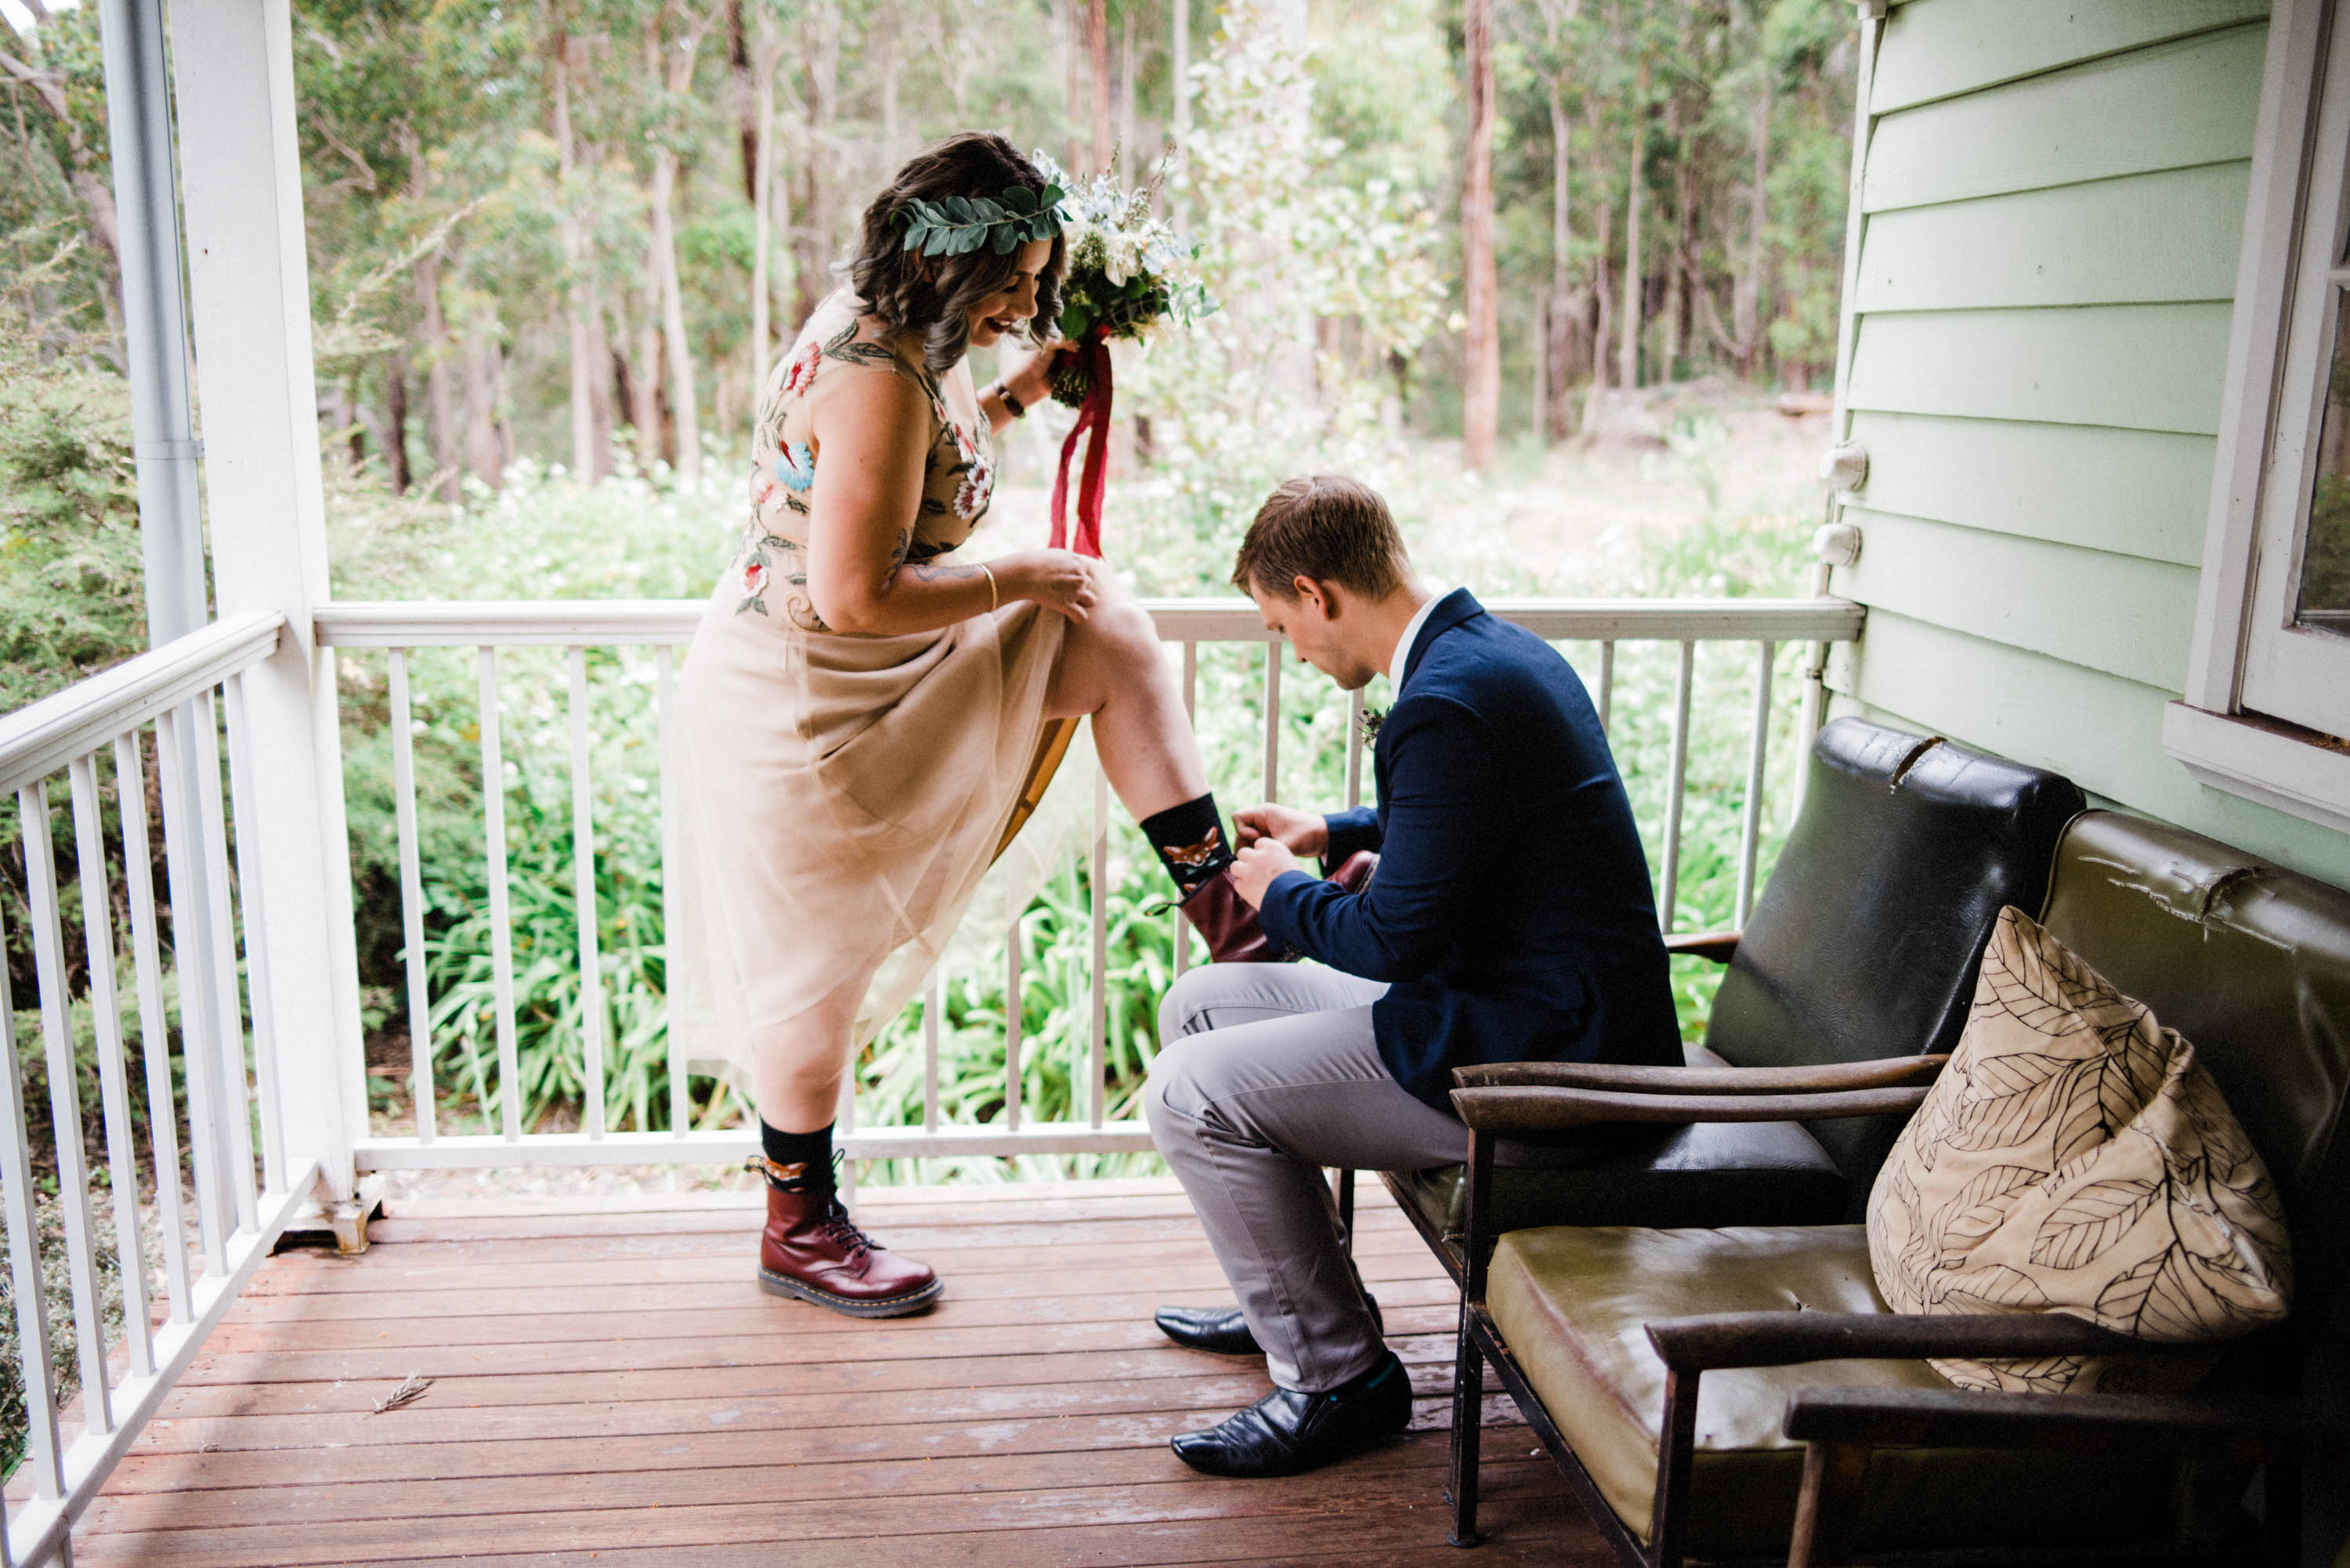 The brides-man helps the Bride with her Dr Marten shoes the morning of her wedding.